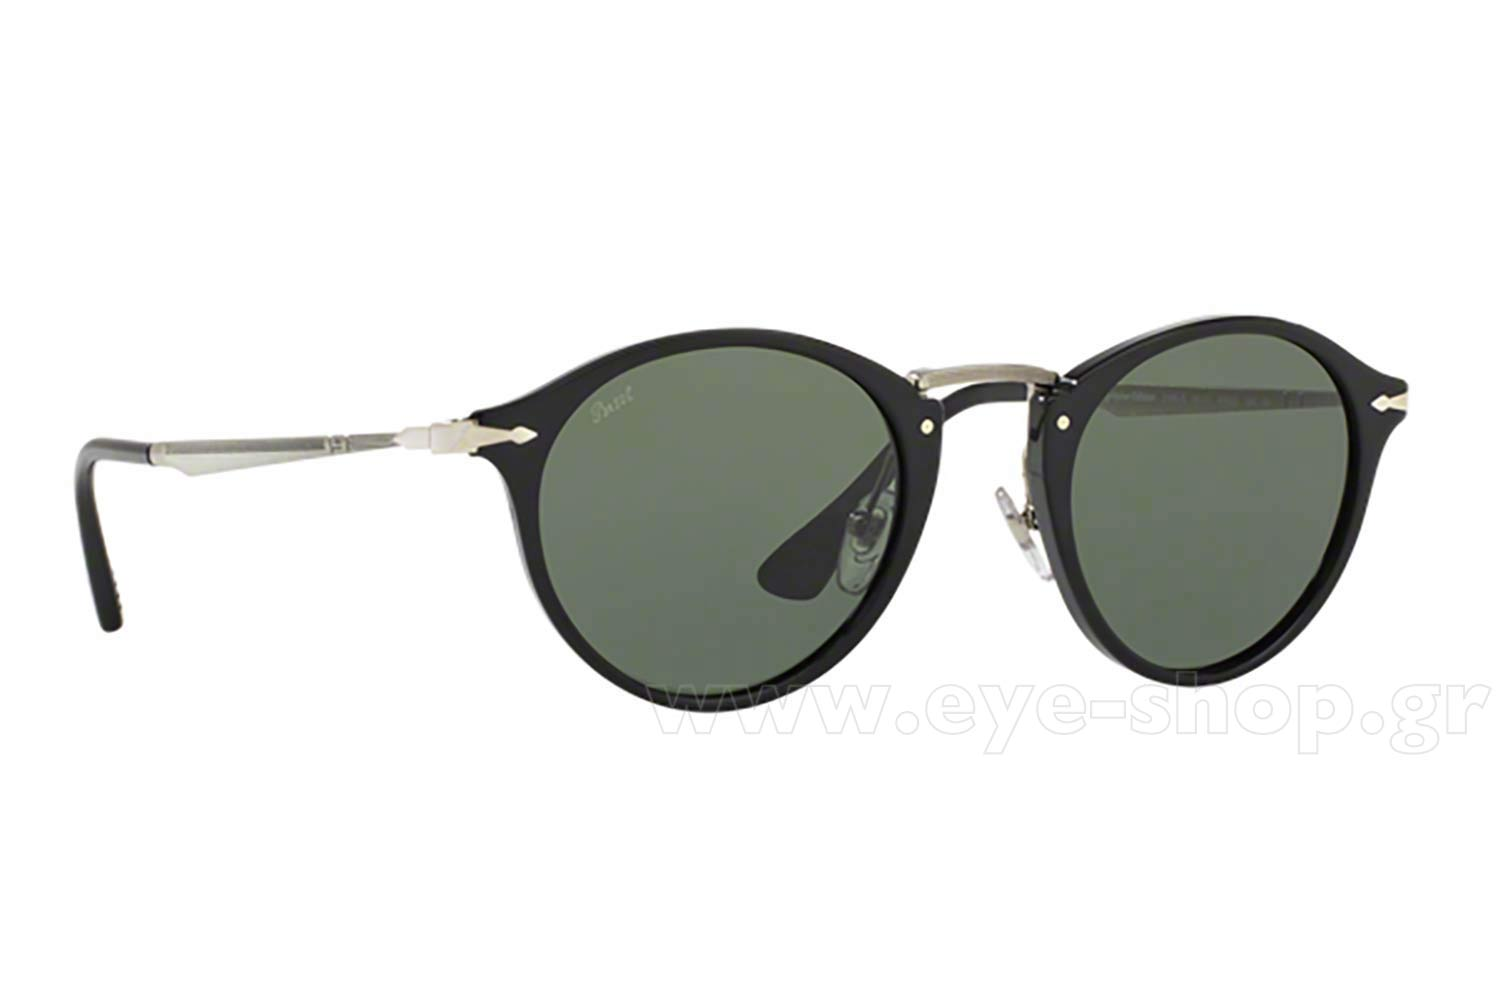 edec86eda PERSOL 3166S 95/31 51 | SUNGLASSES Men 2019 EyeShop